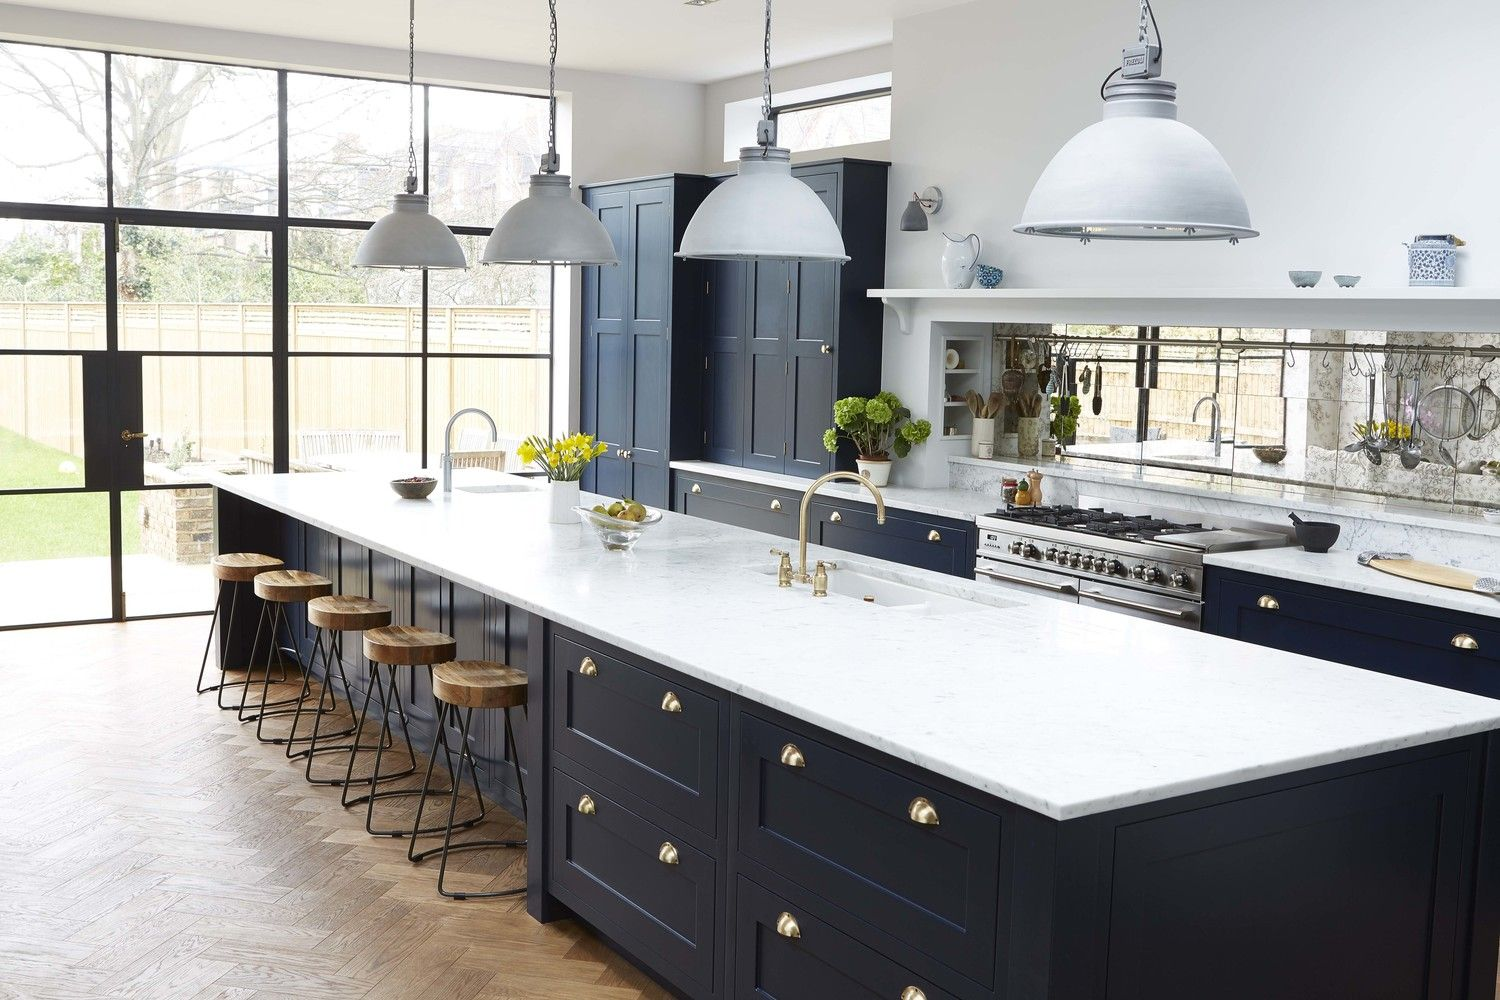 Interior Design Home: U201cBright Kitchen Features A Restored Herringbone  Flooring, Navy Cabinetry And Stark White Counters In This Home Designed By  Blakes ... Part 69